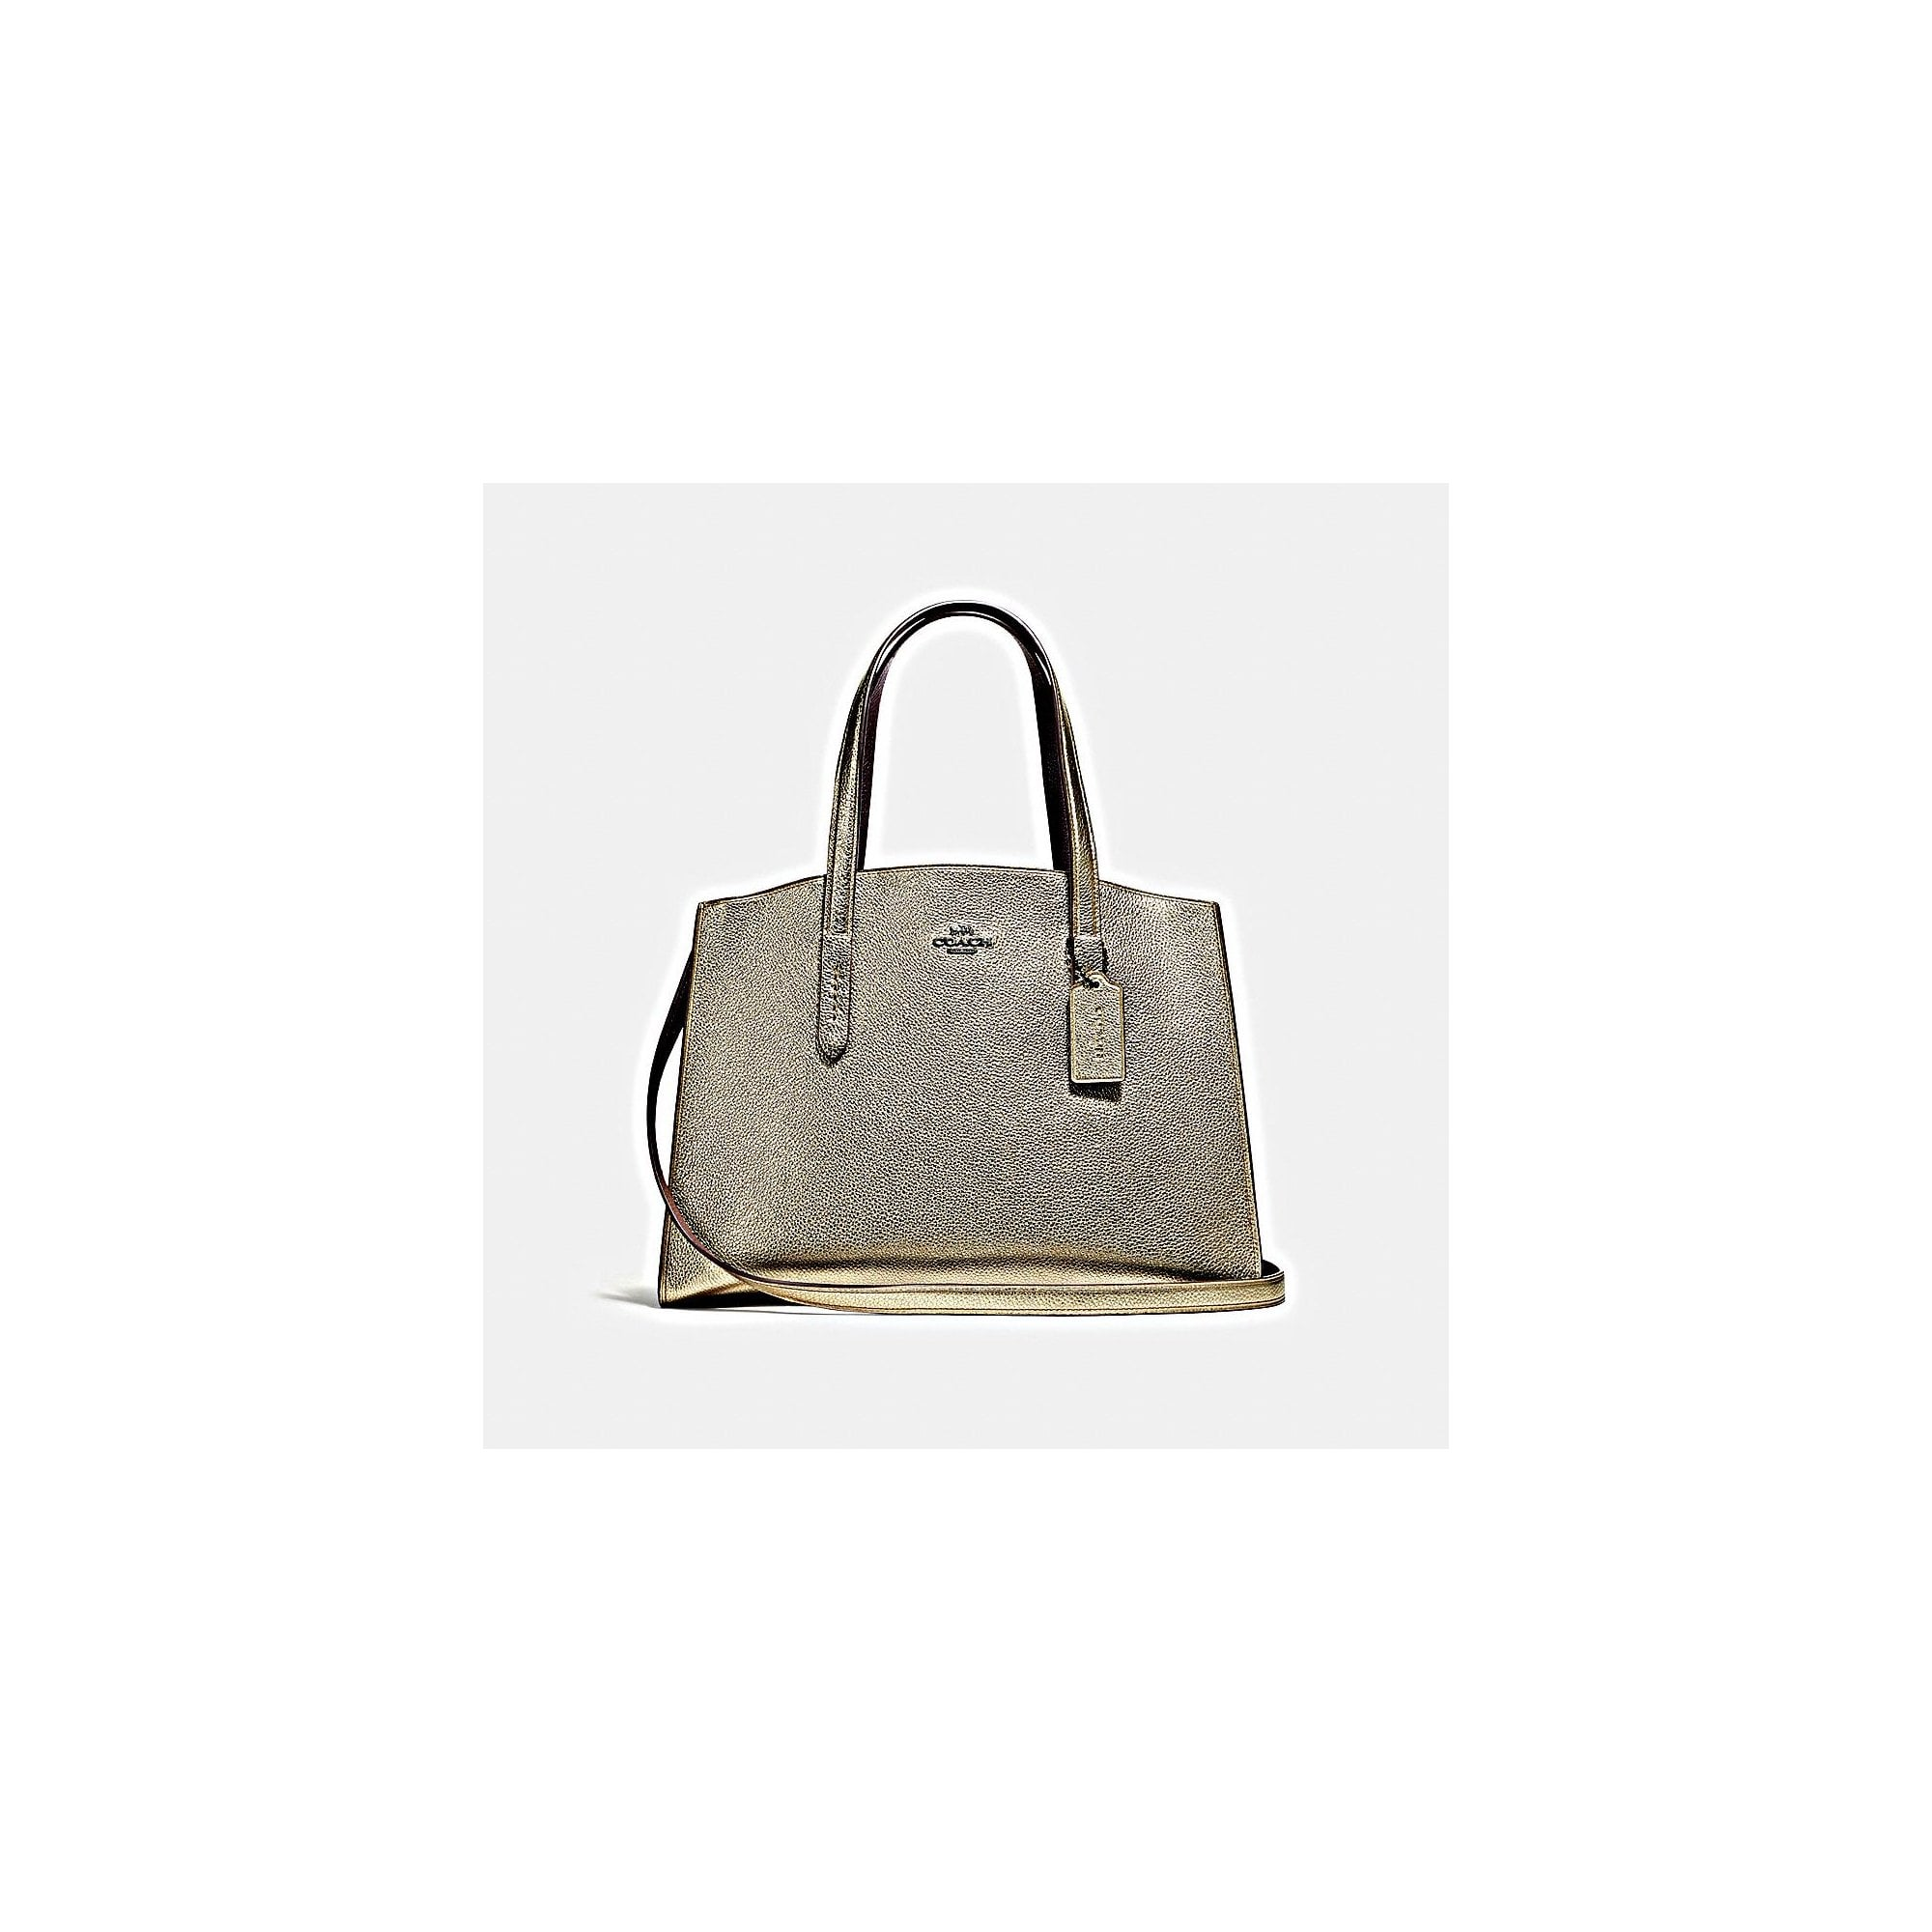 Charlie Carryall in Platinum   Collen   Clare 8012a0745e